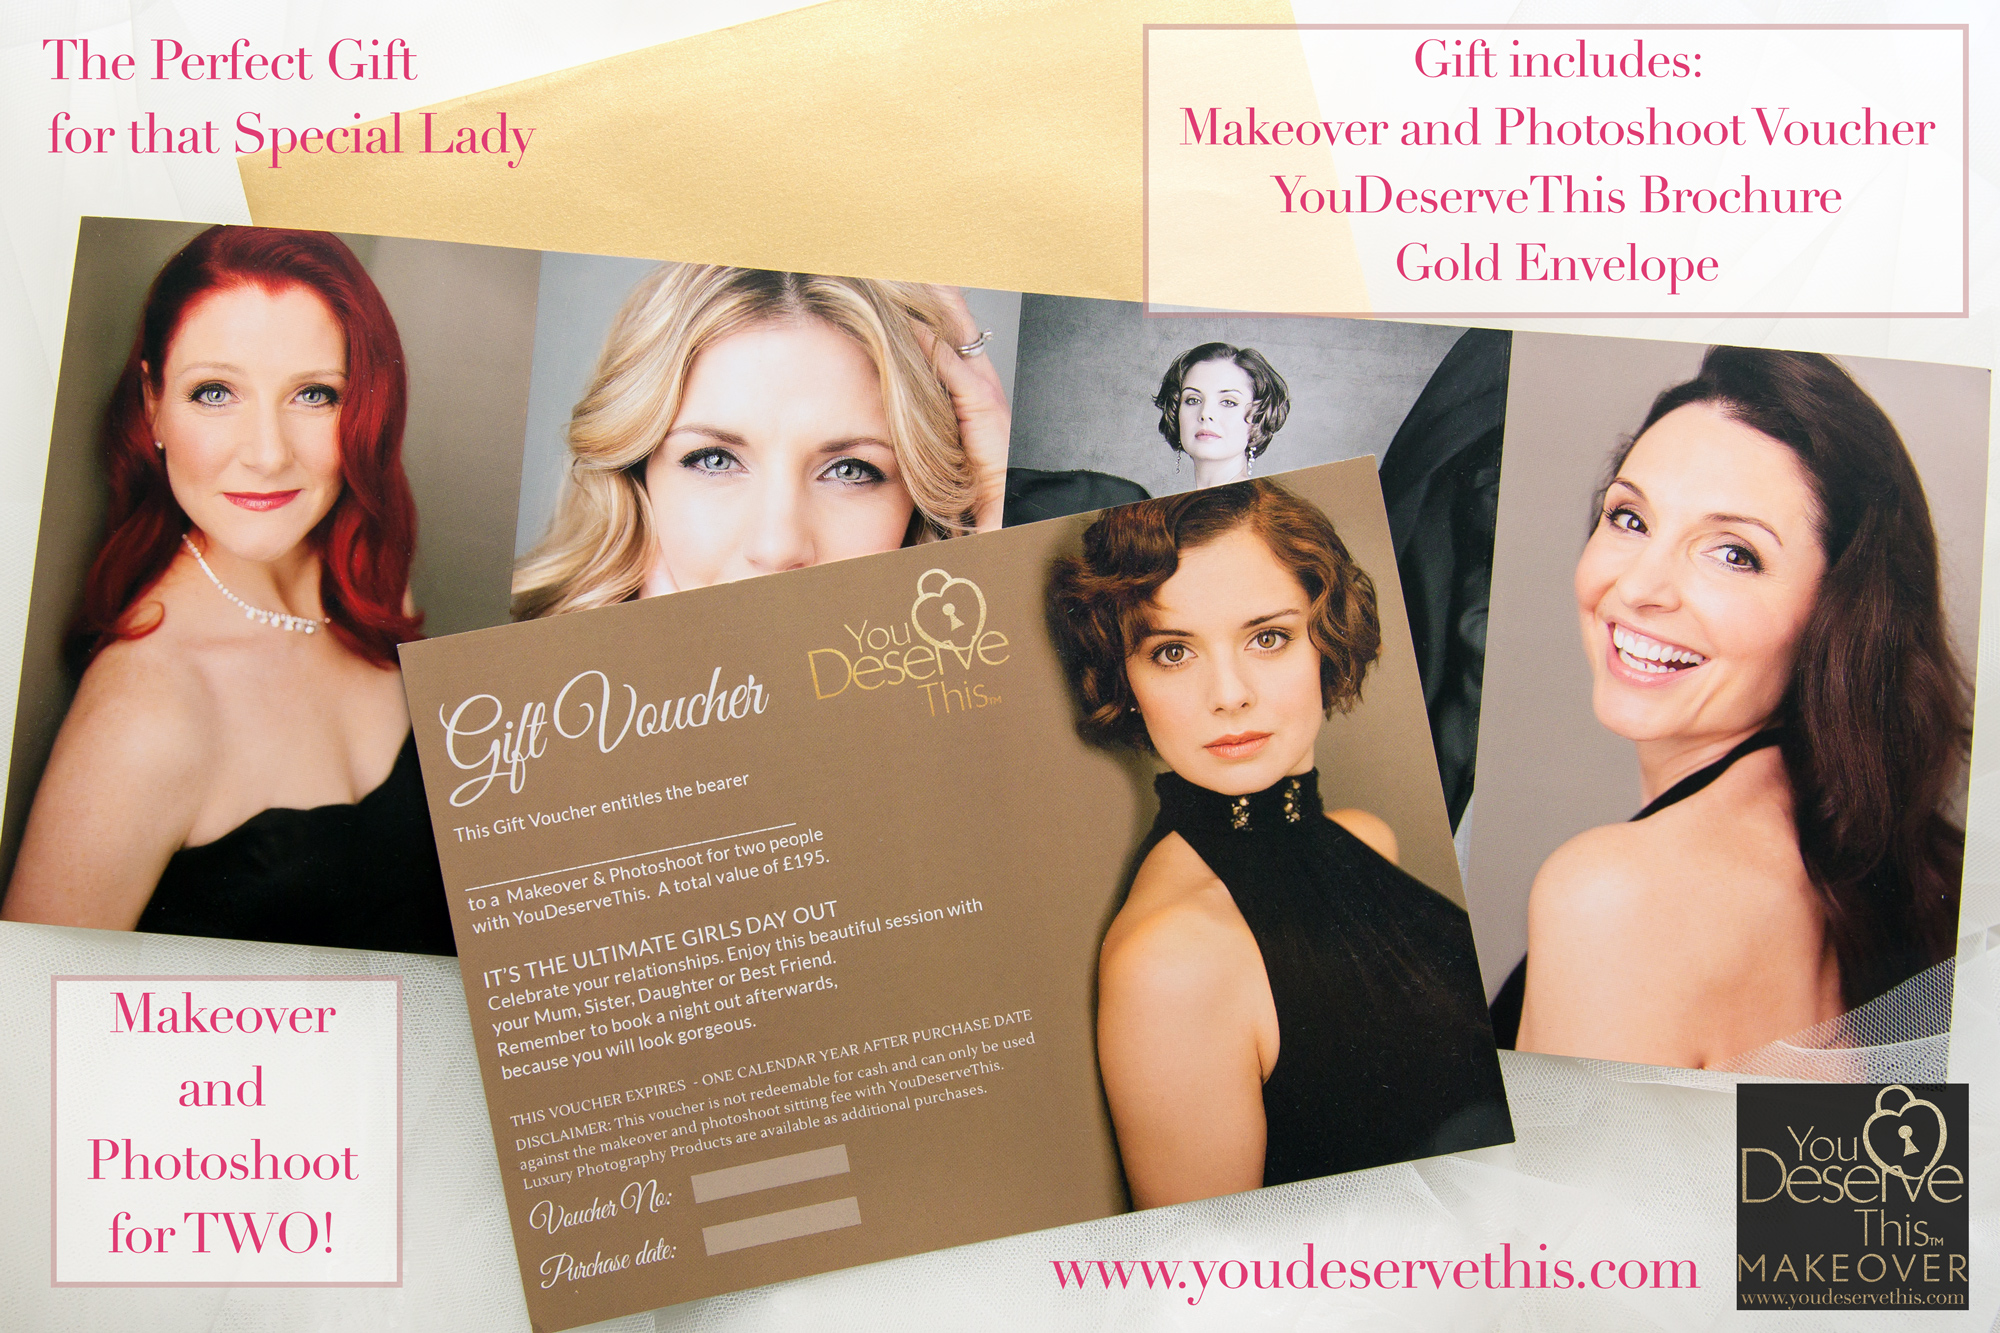 Makeover and Photoshoot for 2 - Gift Vouchers available to purchase in our store online.  www.youdeservethis.com